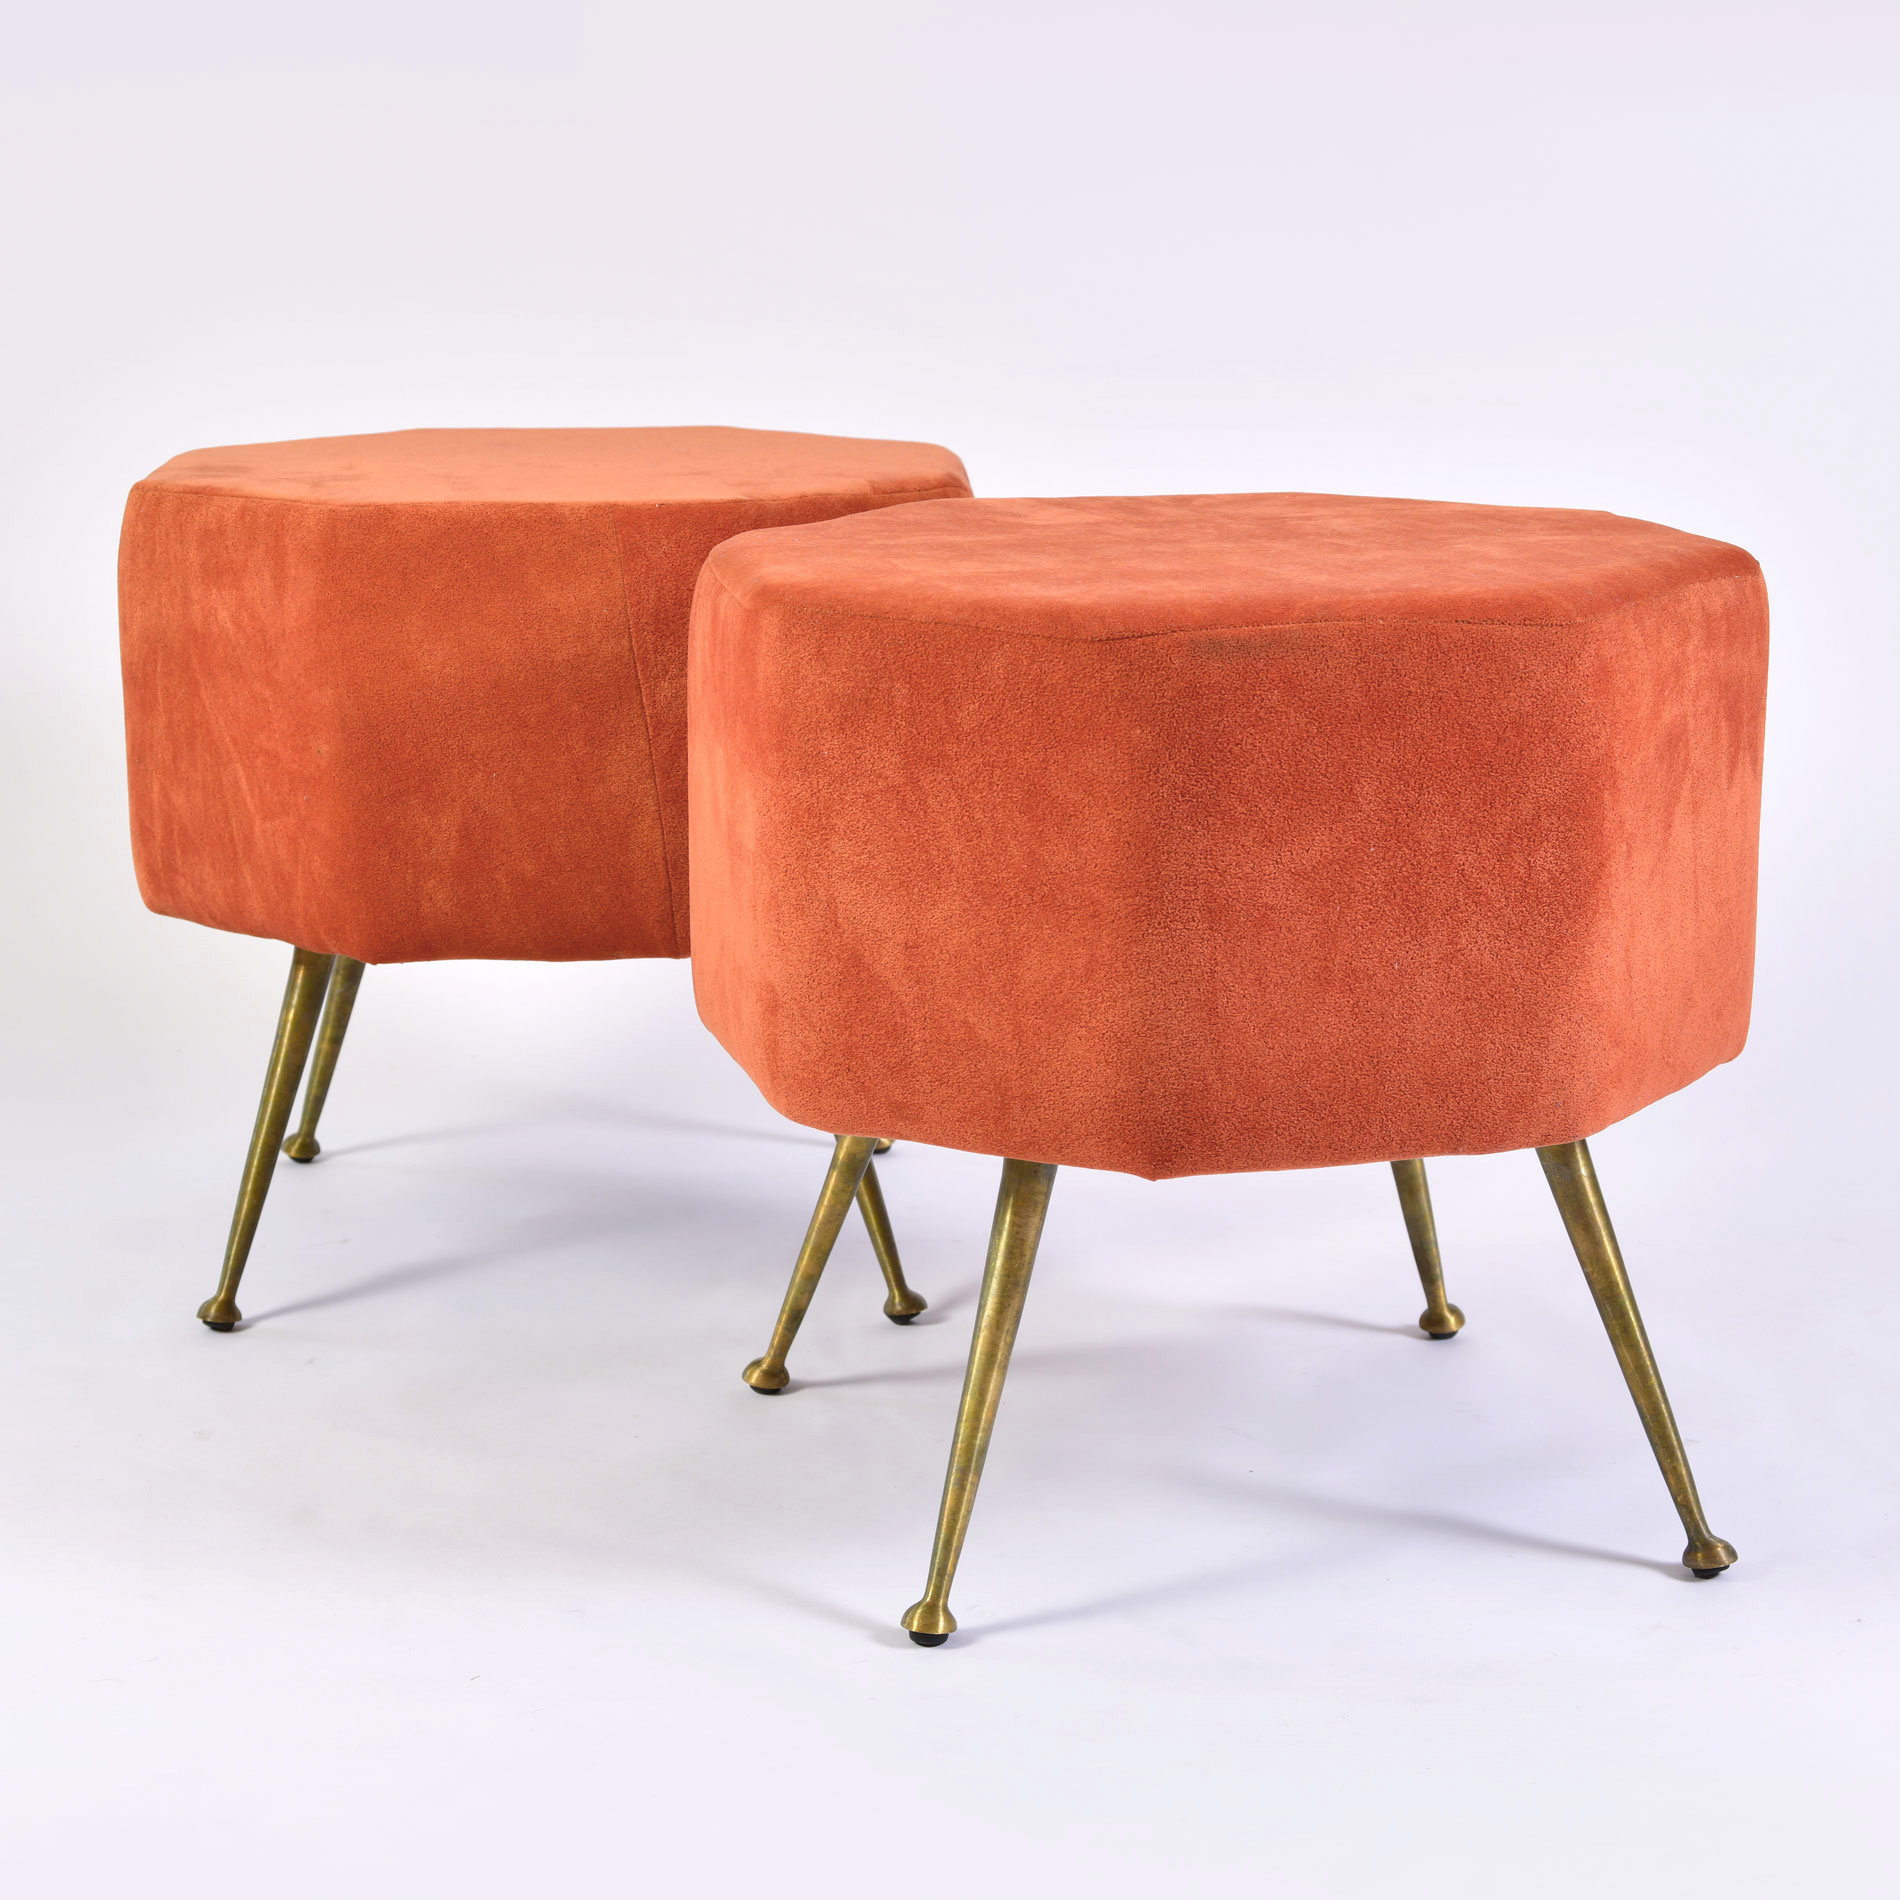 The image for Pair Of Orange Stools 02